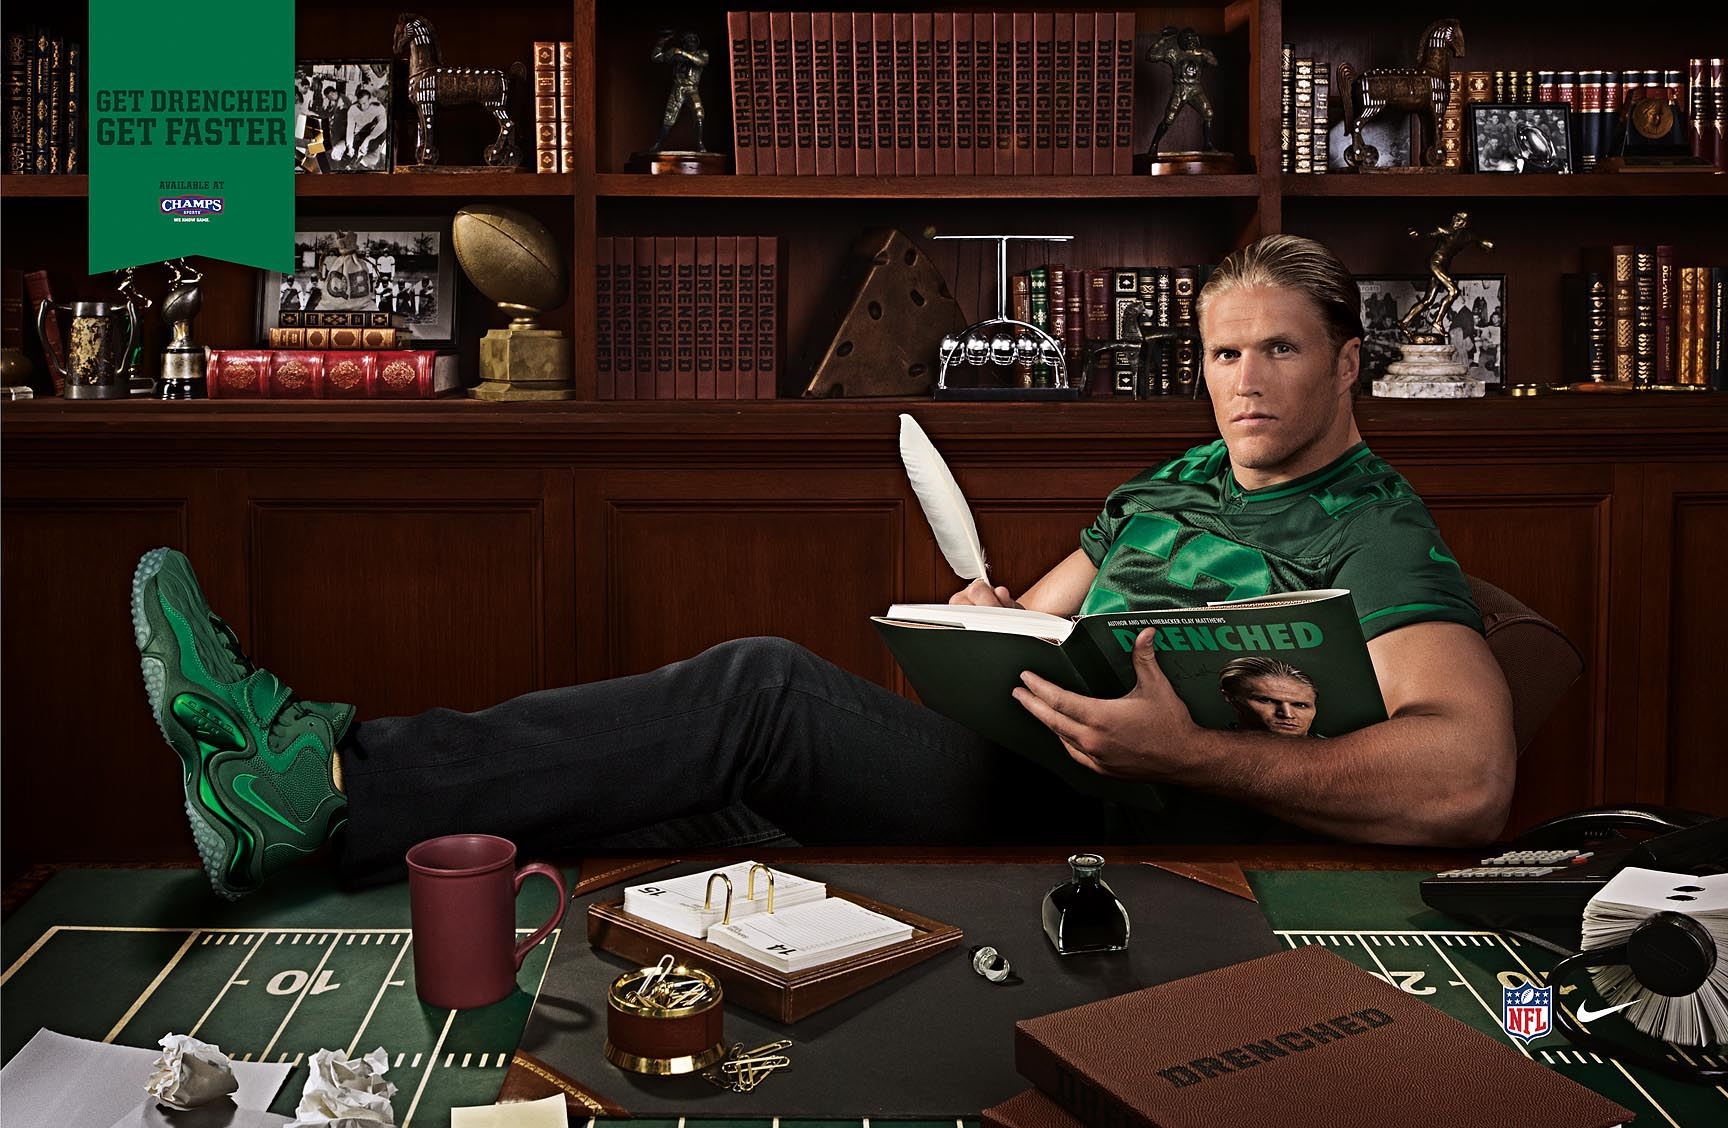 Clay Matthews for Champs Drenched - Los Angeles, CA